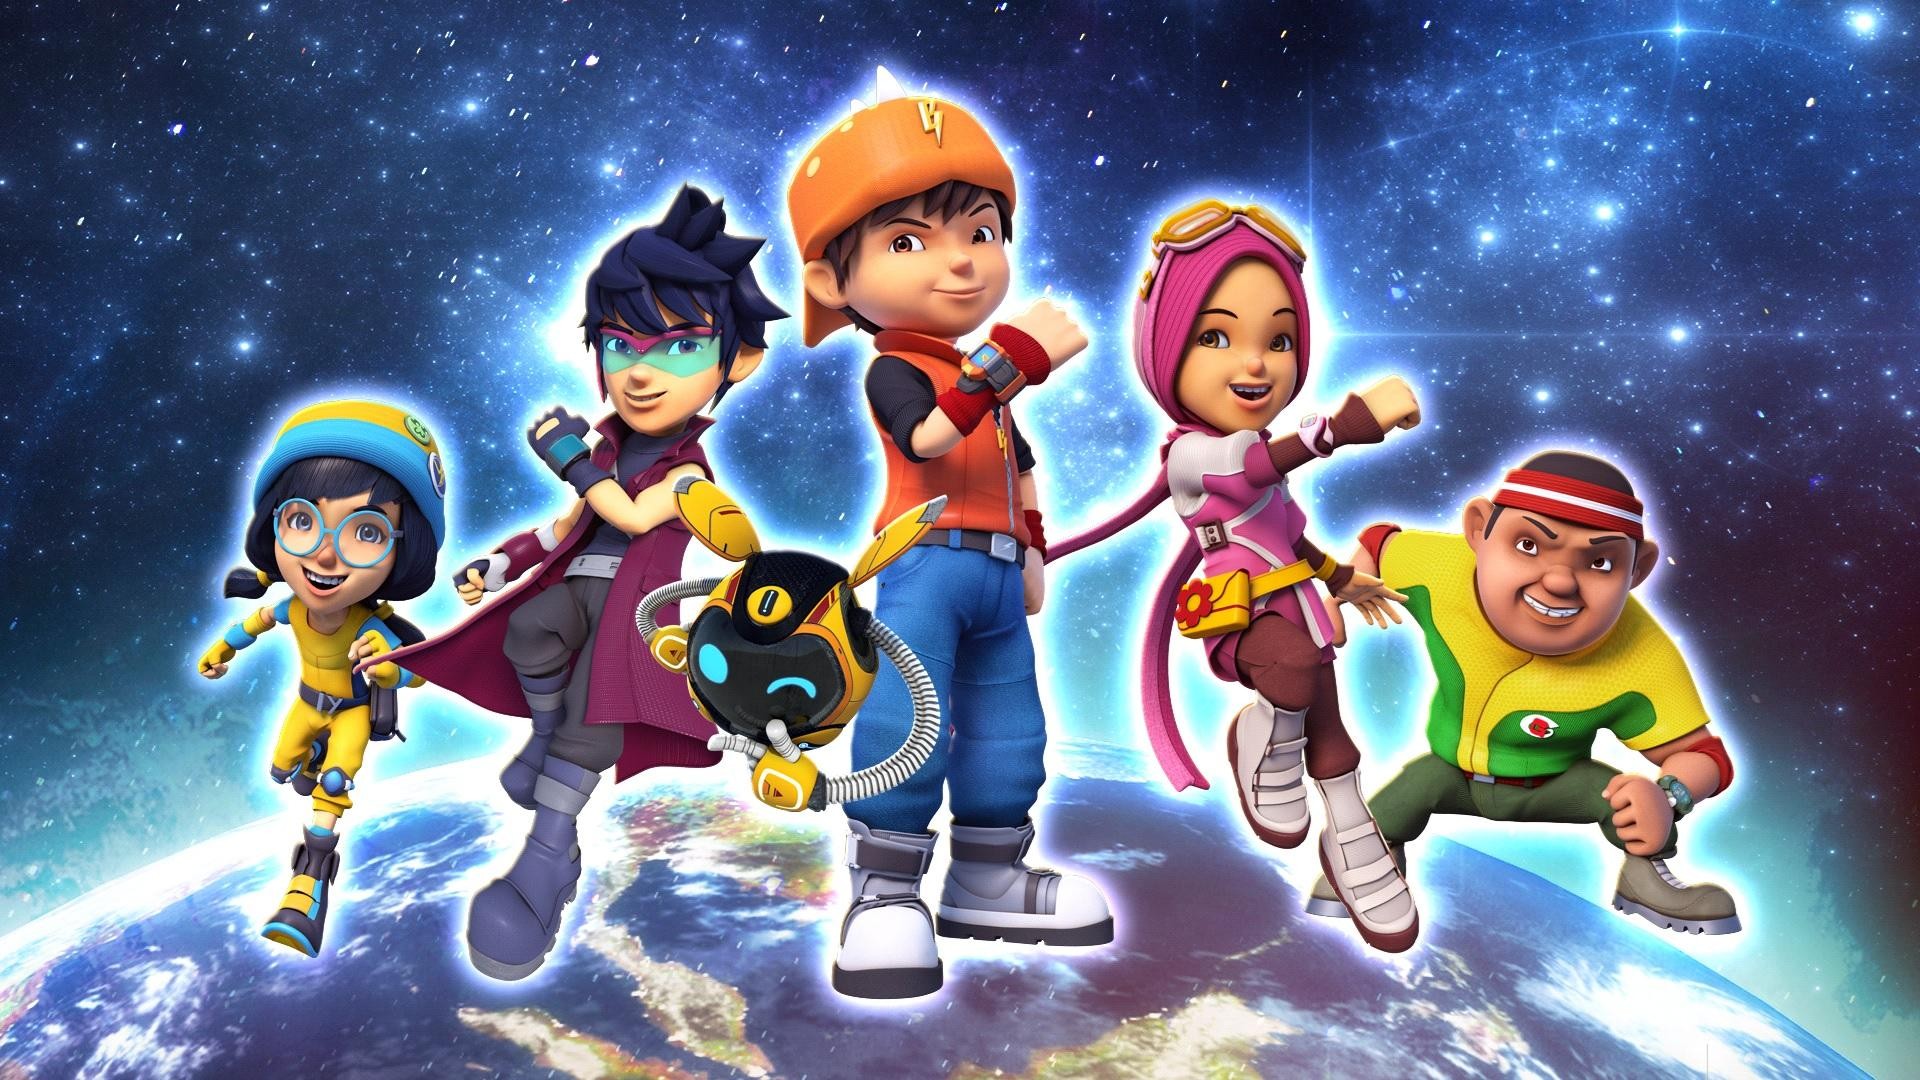 Boboiboy Galaxy HD Wallpapers Wallpaper Cave